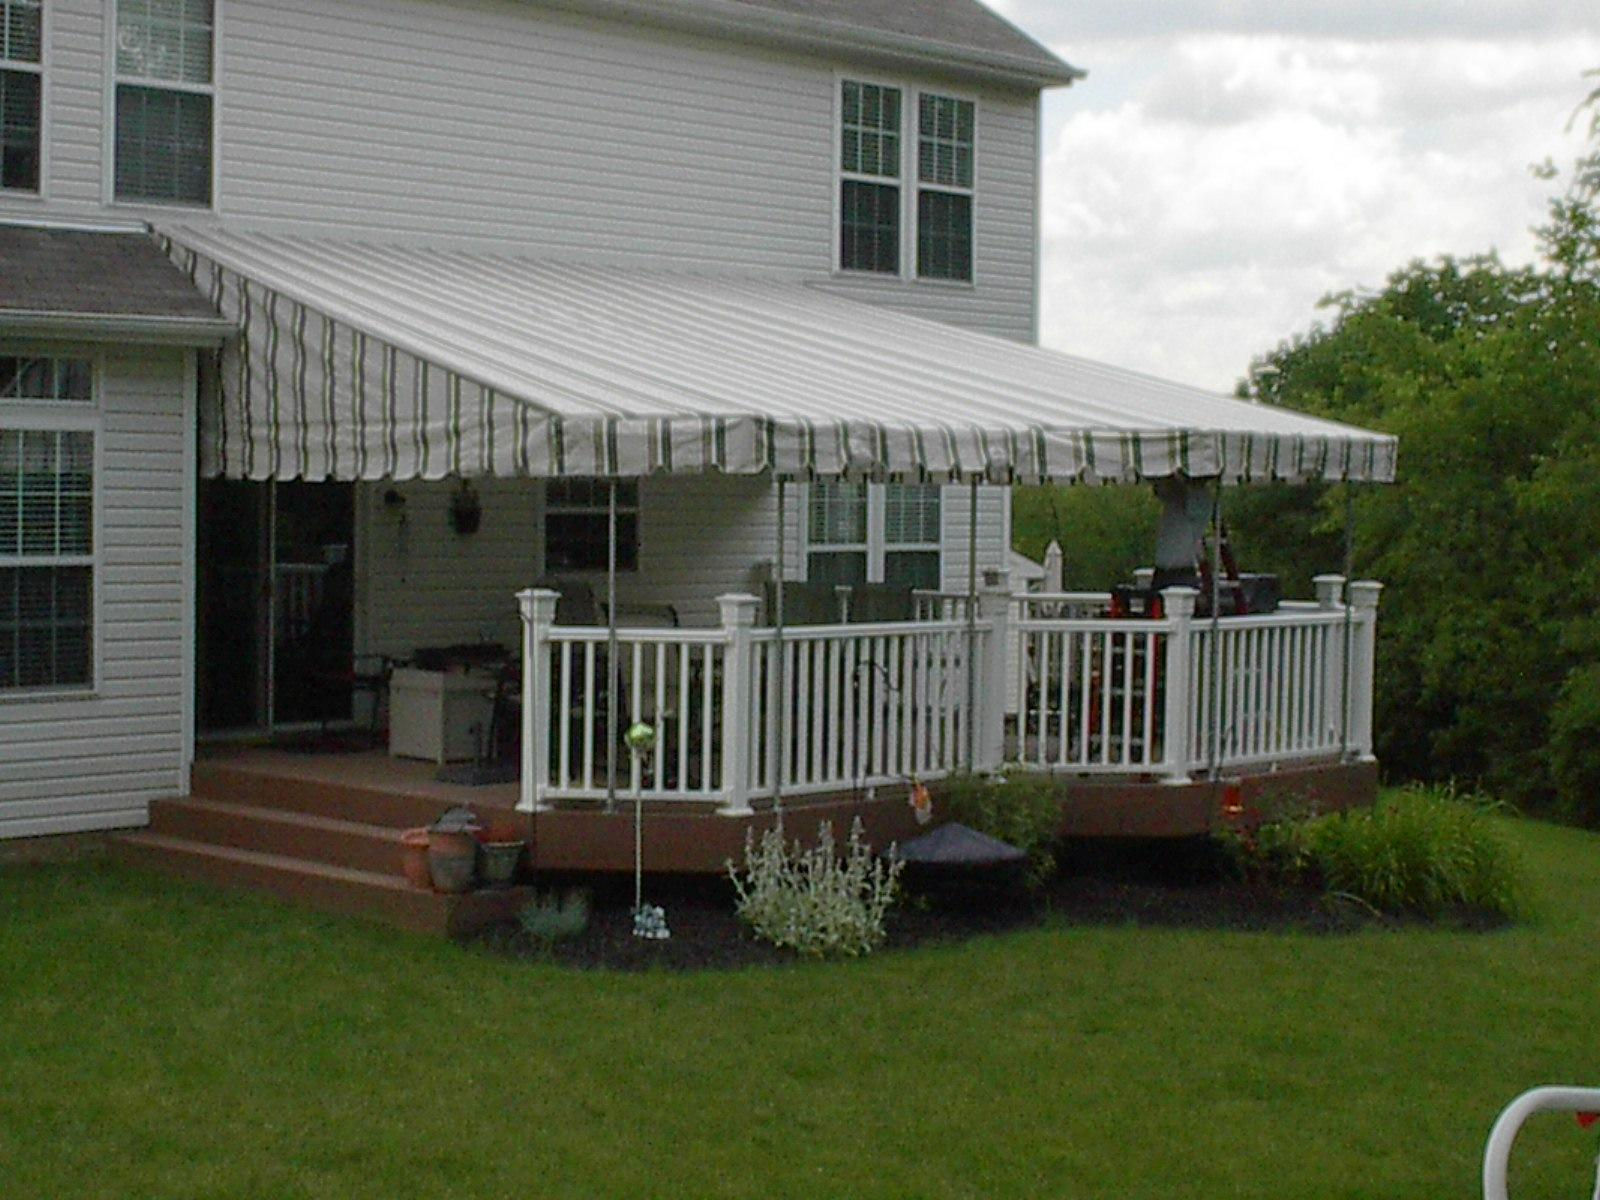 Canvas Awnings for Your Home